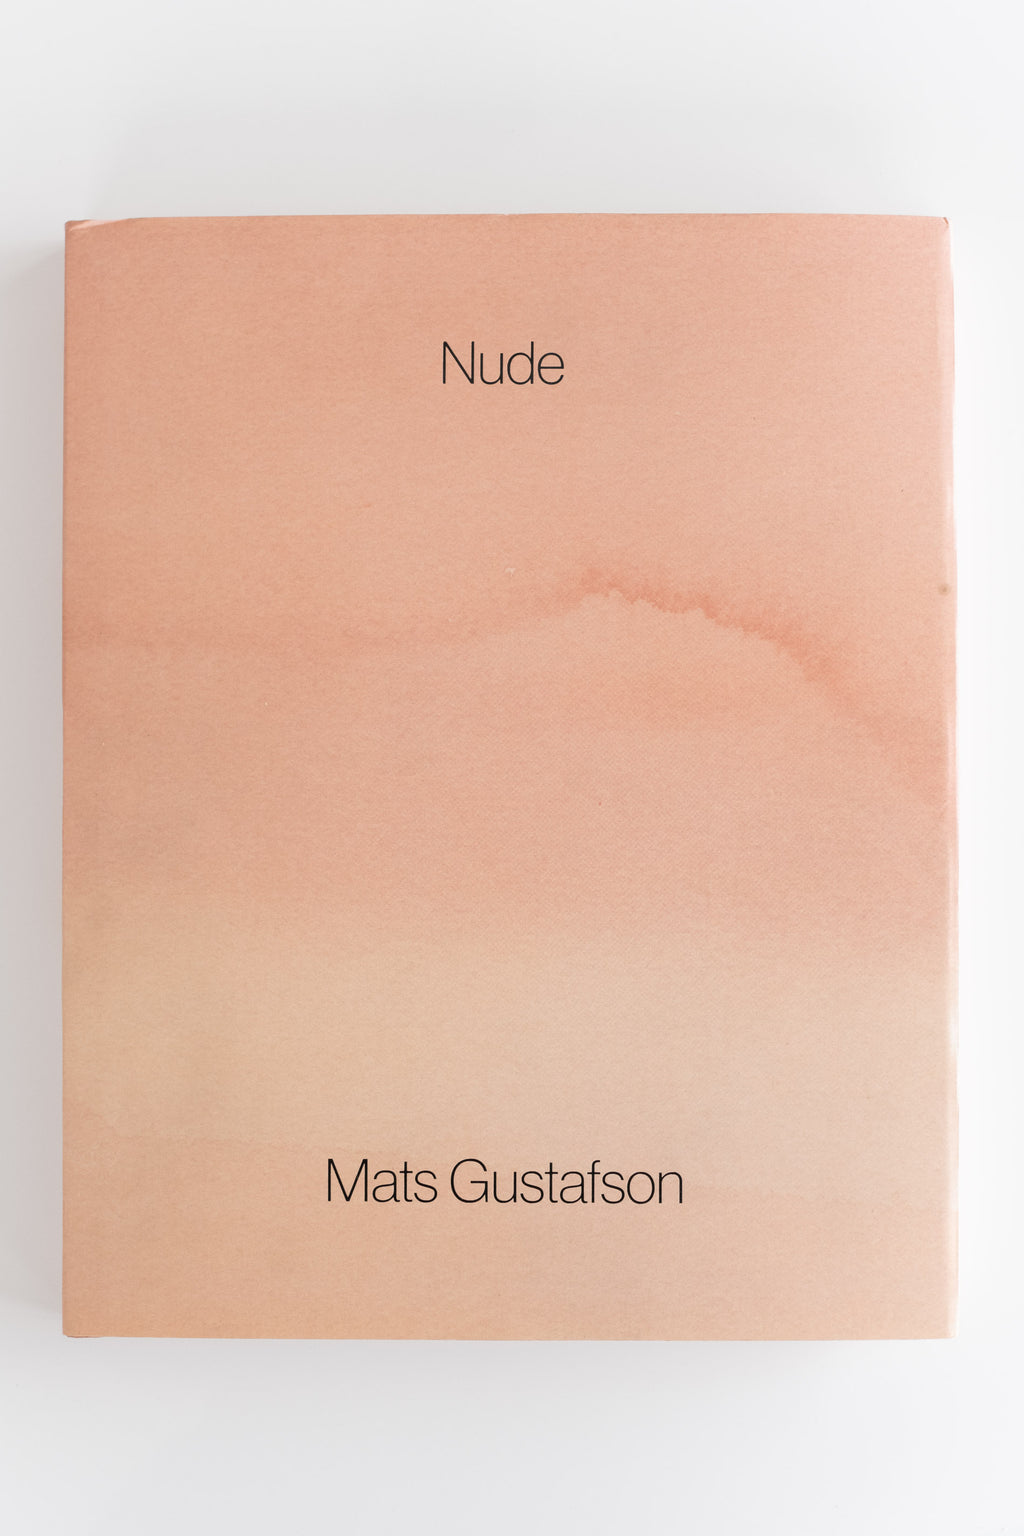 NUDE by Mats Gustafson